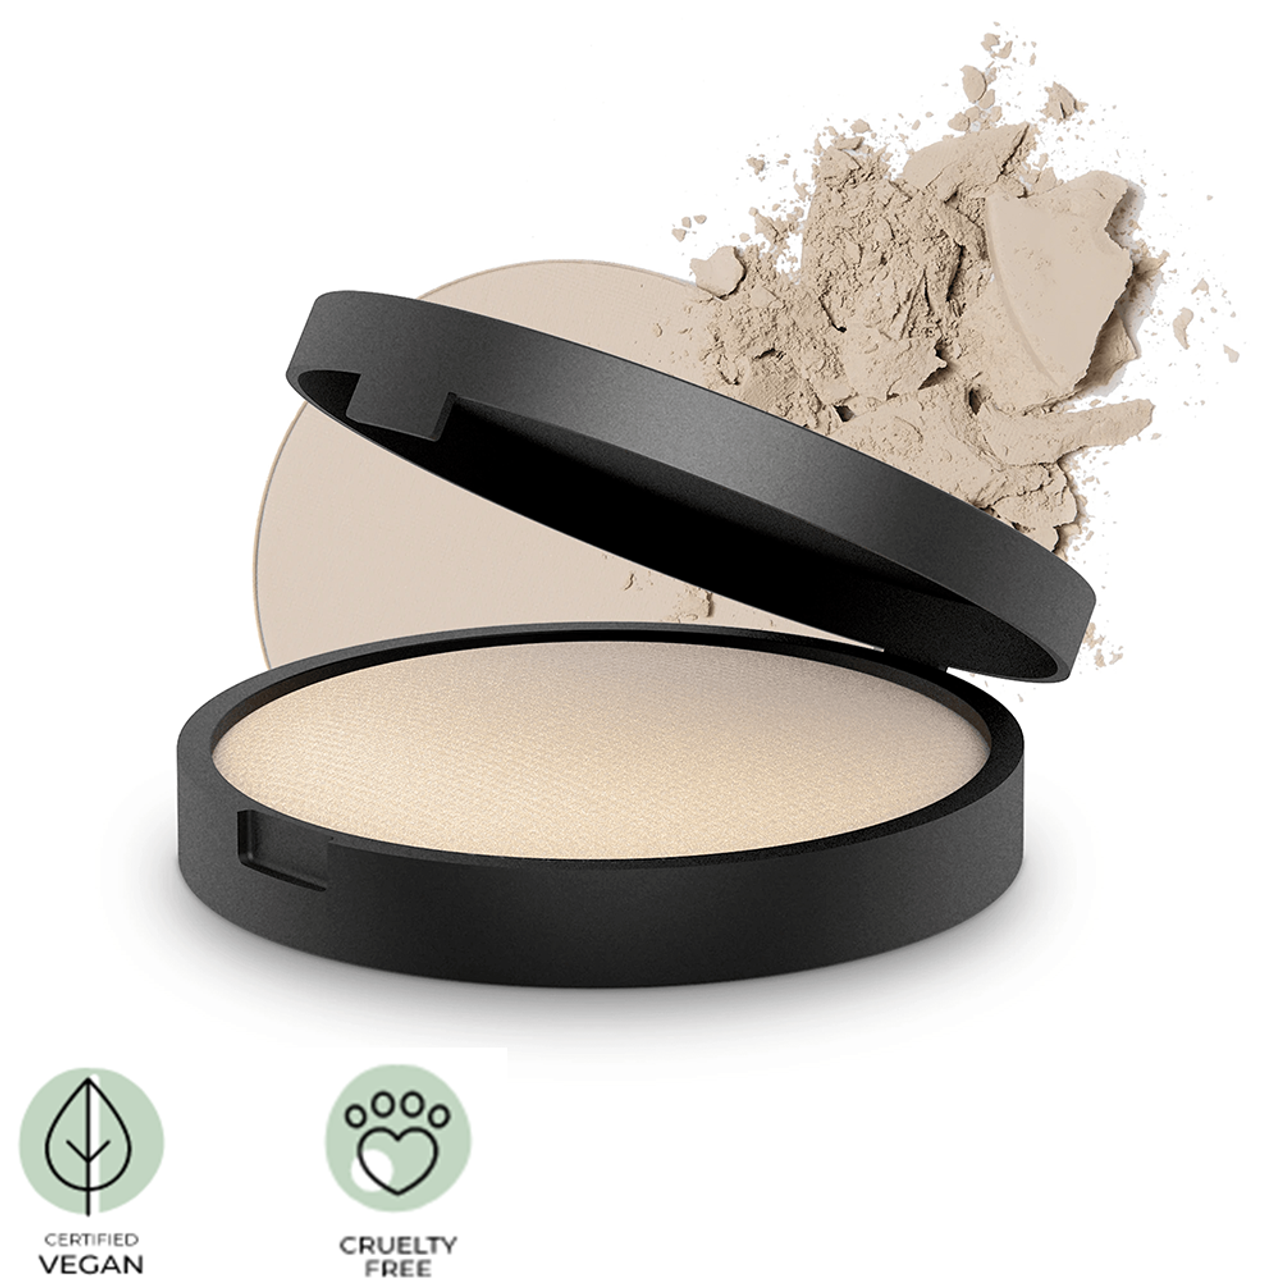 Baked Mineral Foundation 8g